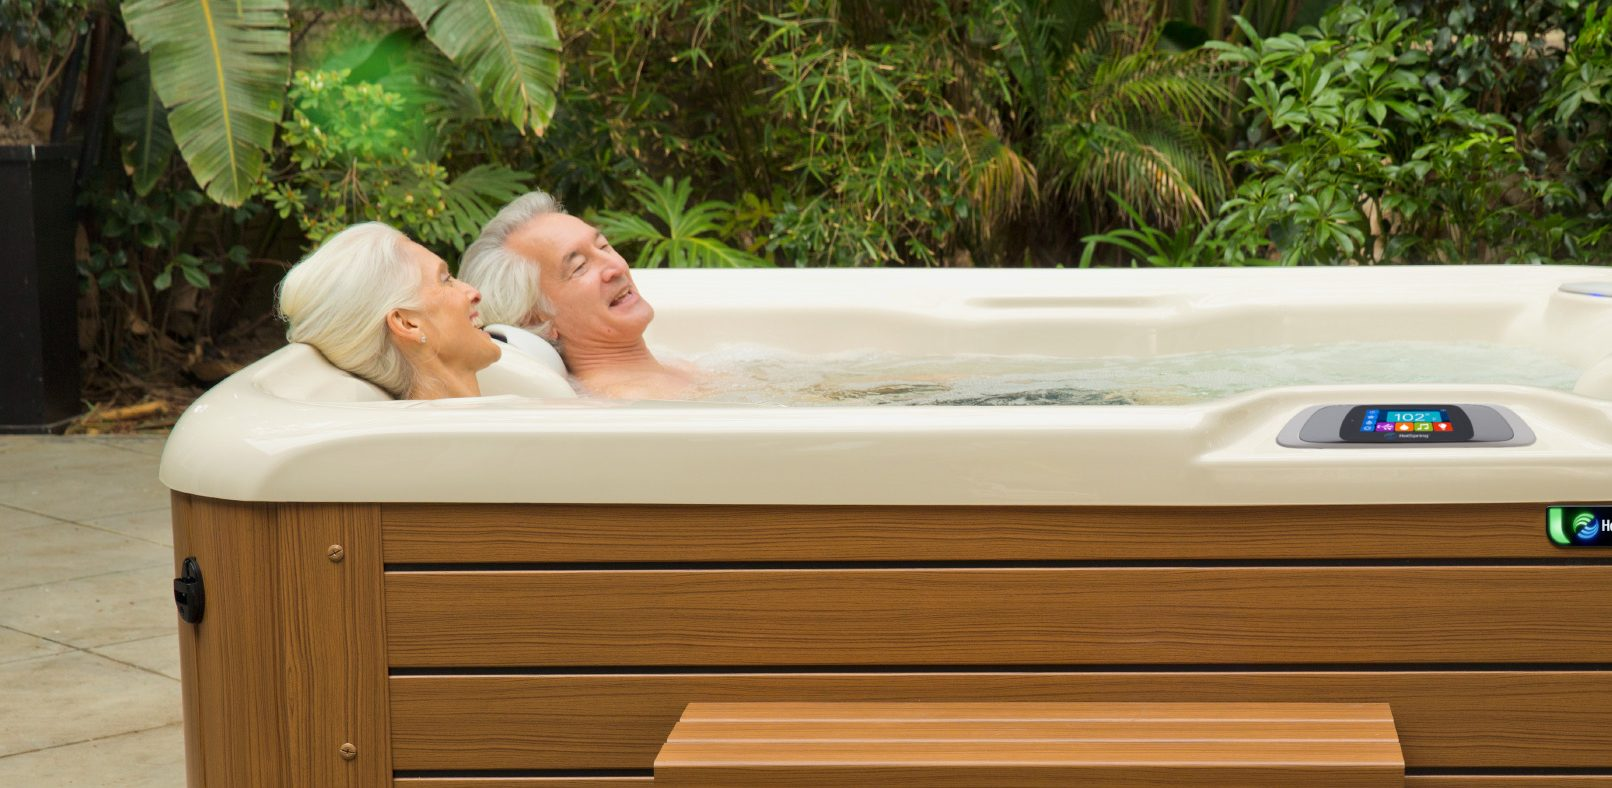 5 Illnesses Treated by Hot Tub Therapy